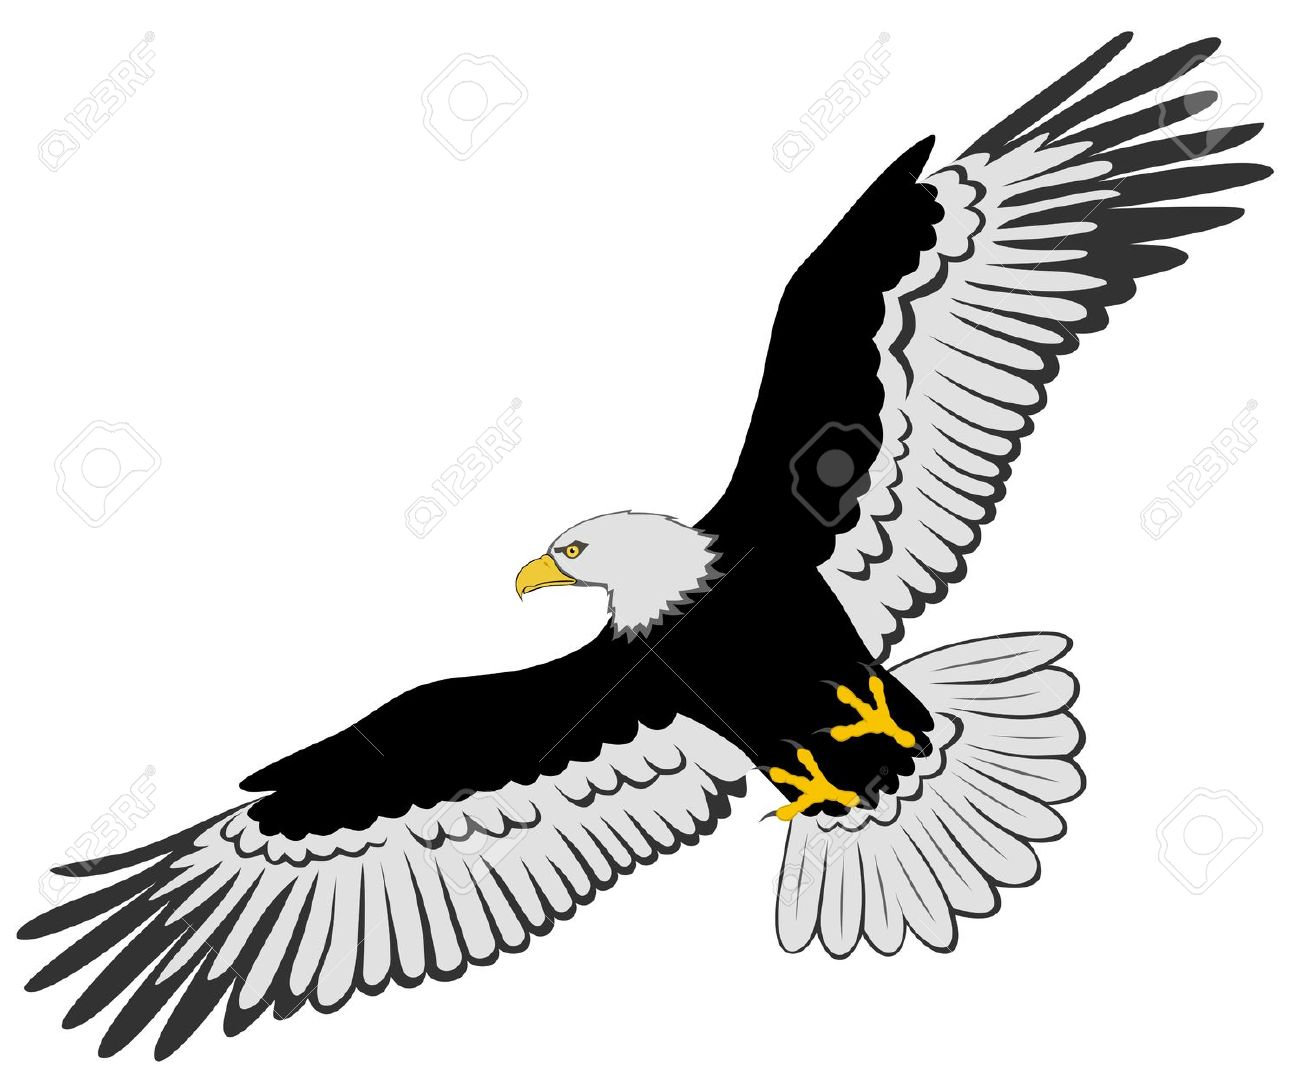 Outline cliparts free download. Flying eagle clipart black and white